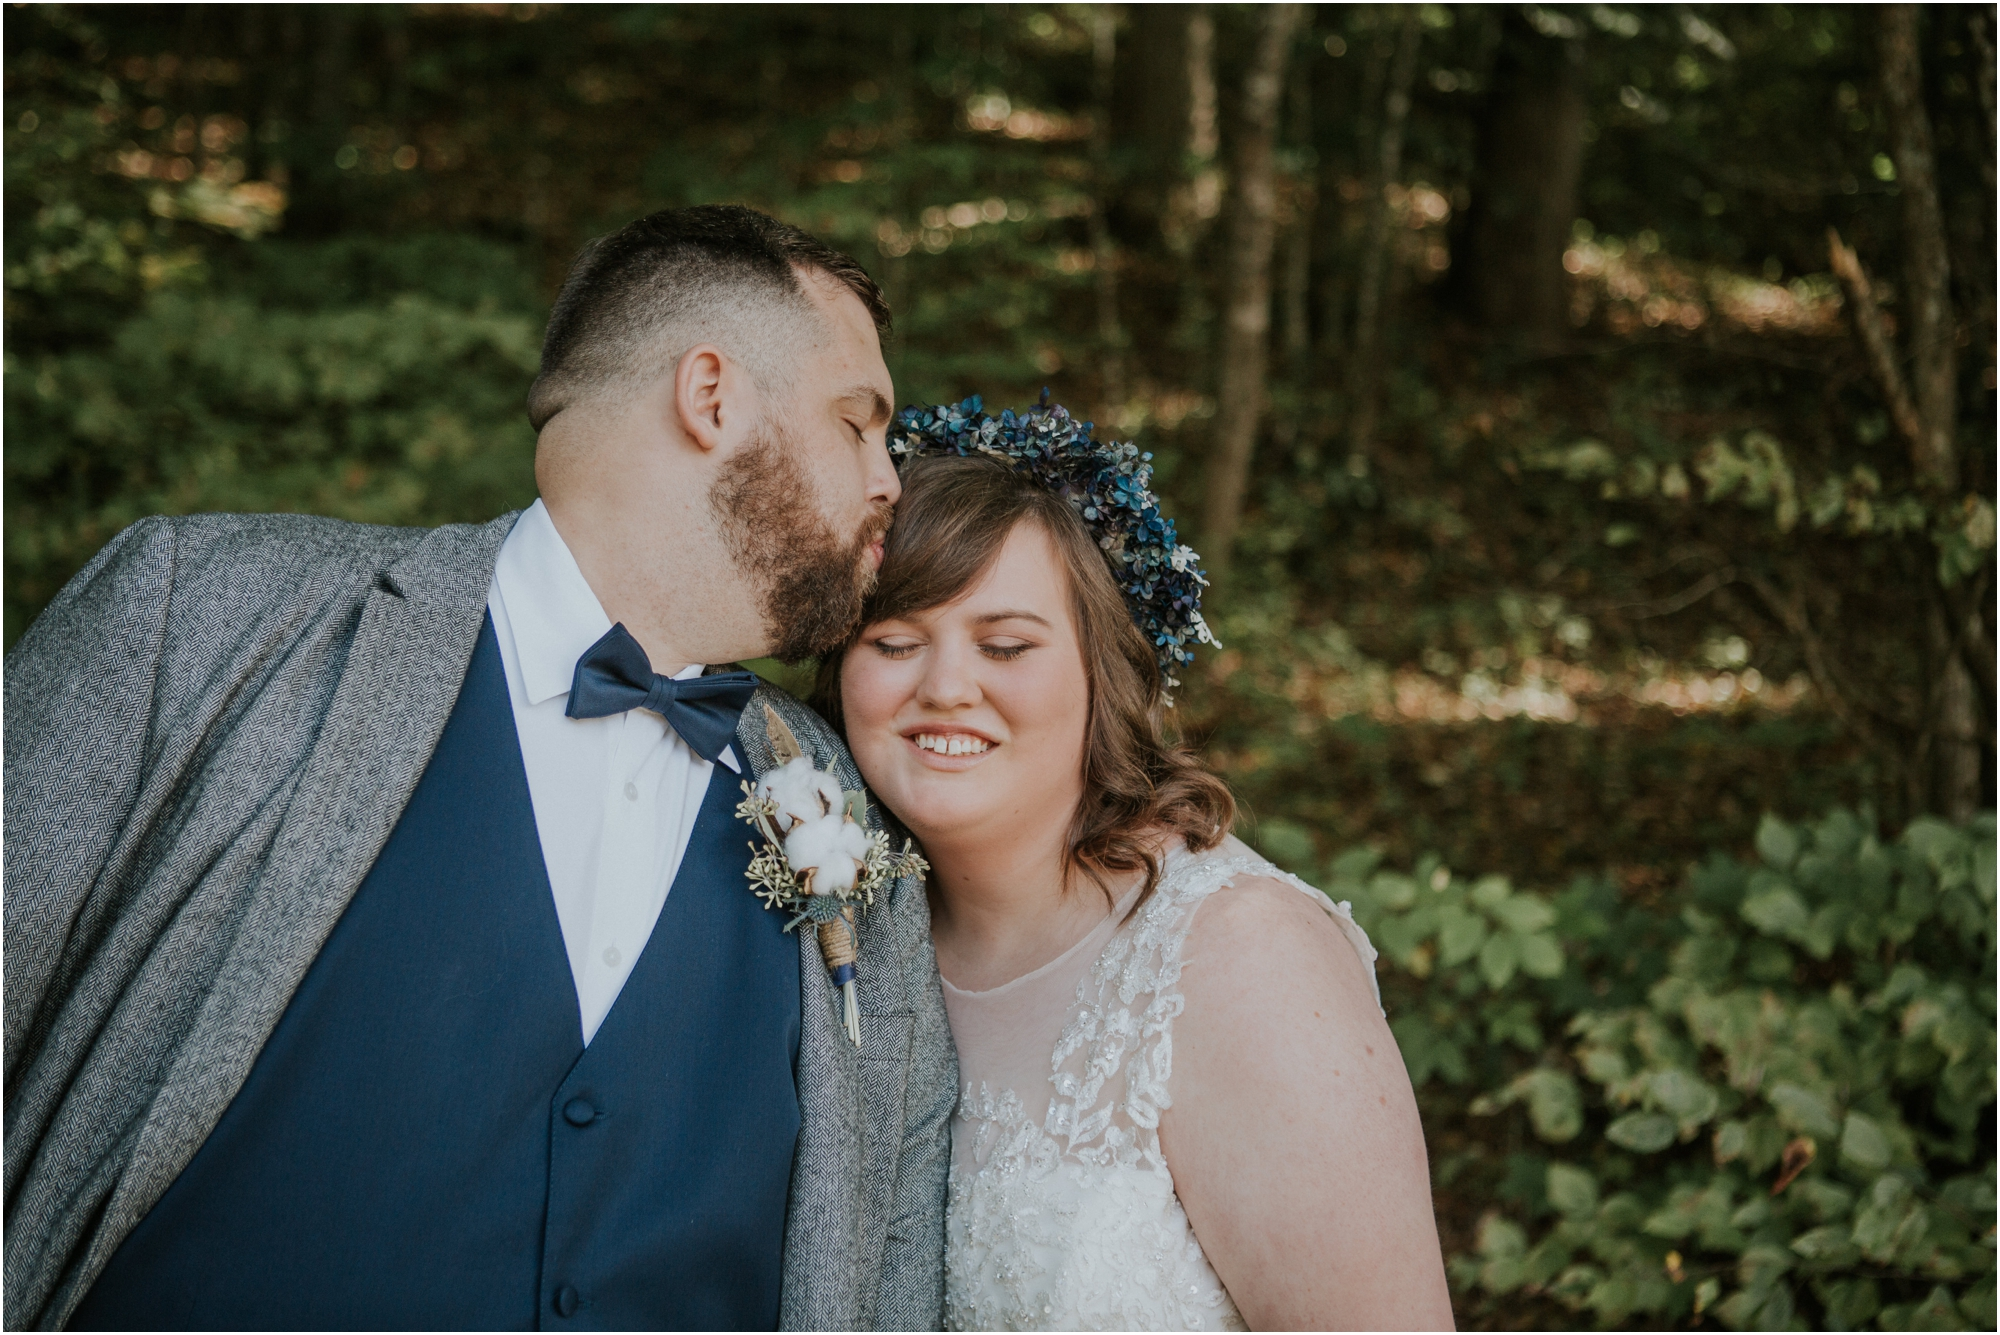 caryville-robbins-middle-tennessee-intimate-cozy-fall-navy-rustic-backyard-wedding_0051.jpg